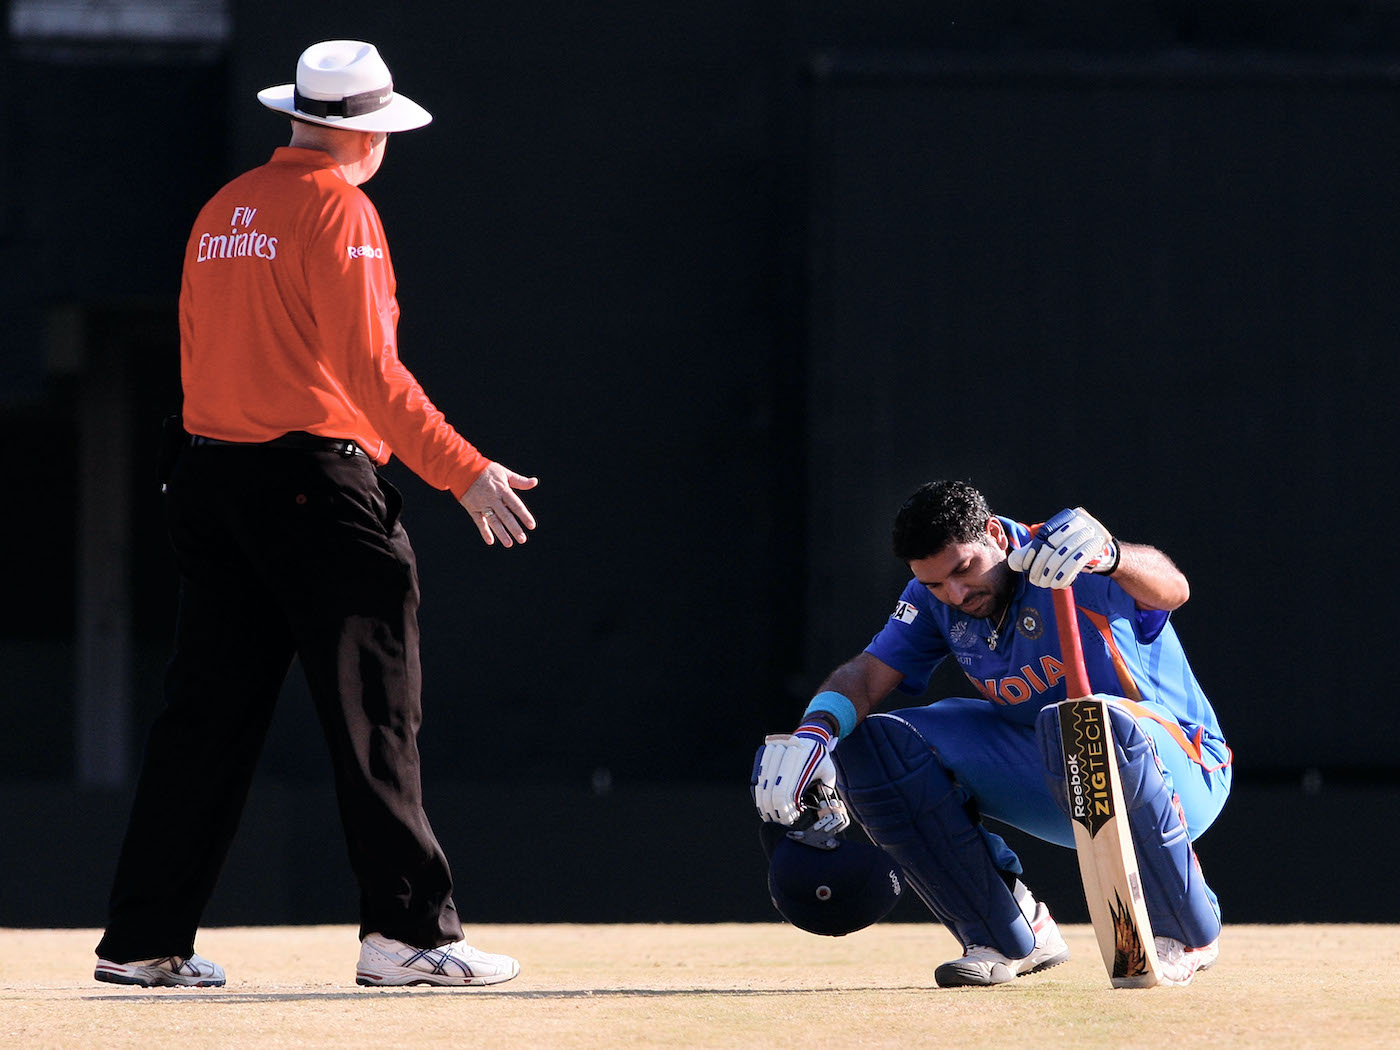 Umpire Steve Davis checks on a dehydrated and heat-exhausted Yuvraj Singh during India's game against West Indies in Chennai